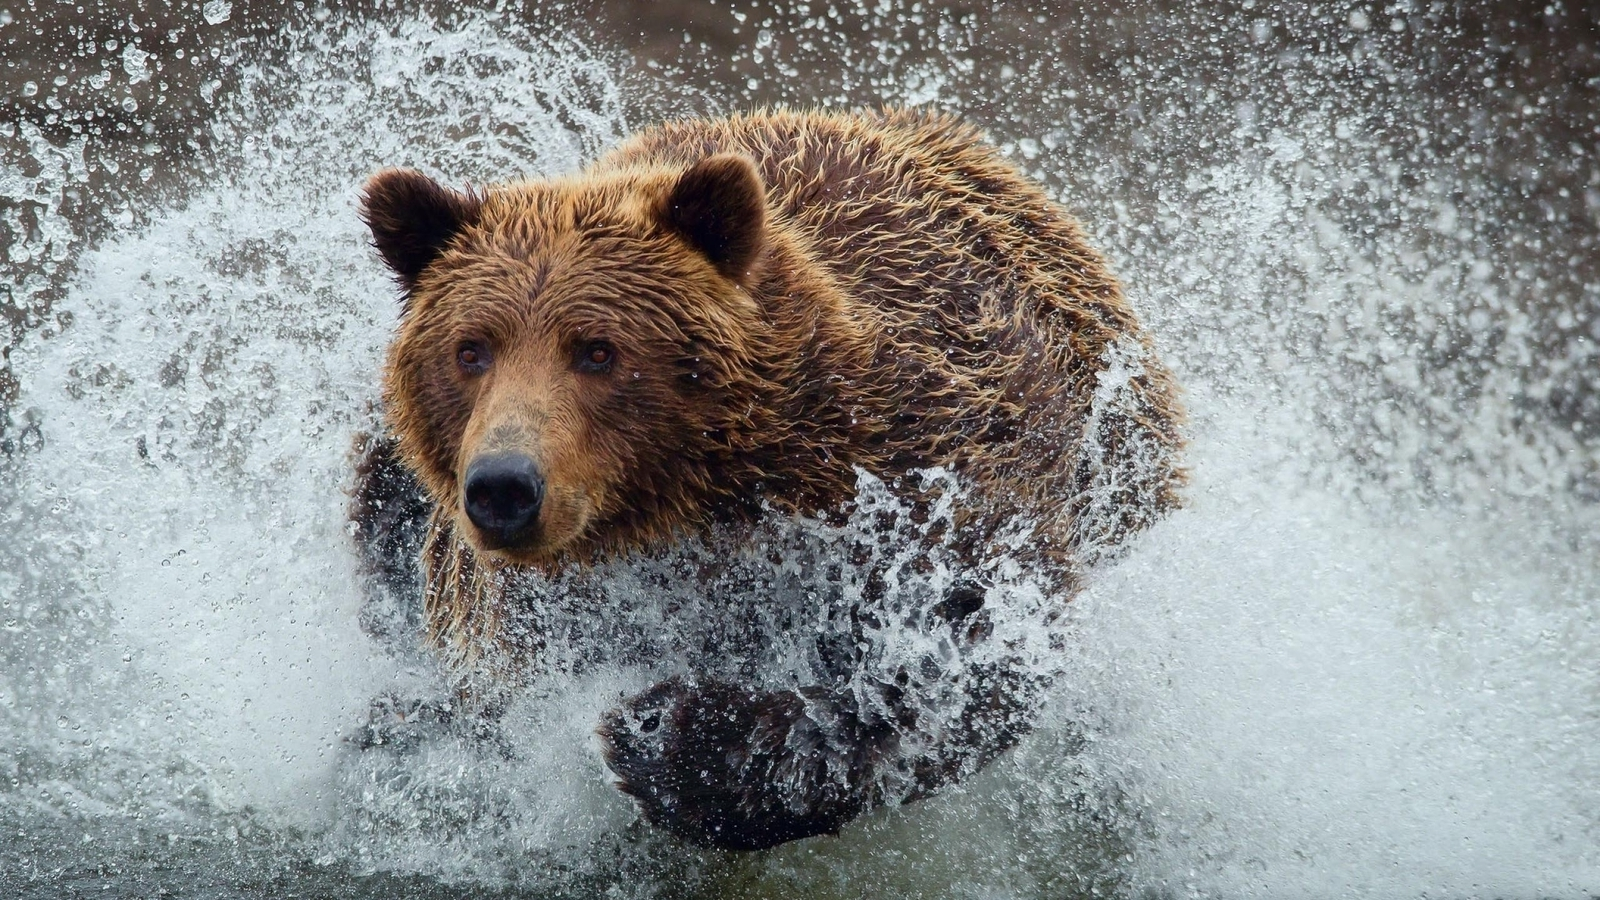 Water animals wet grizzly bears running bears wild animals (1600x900)